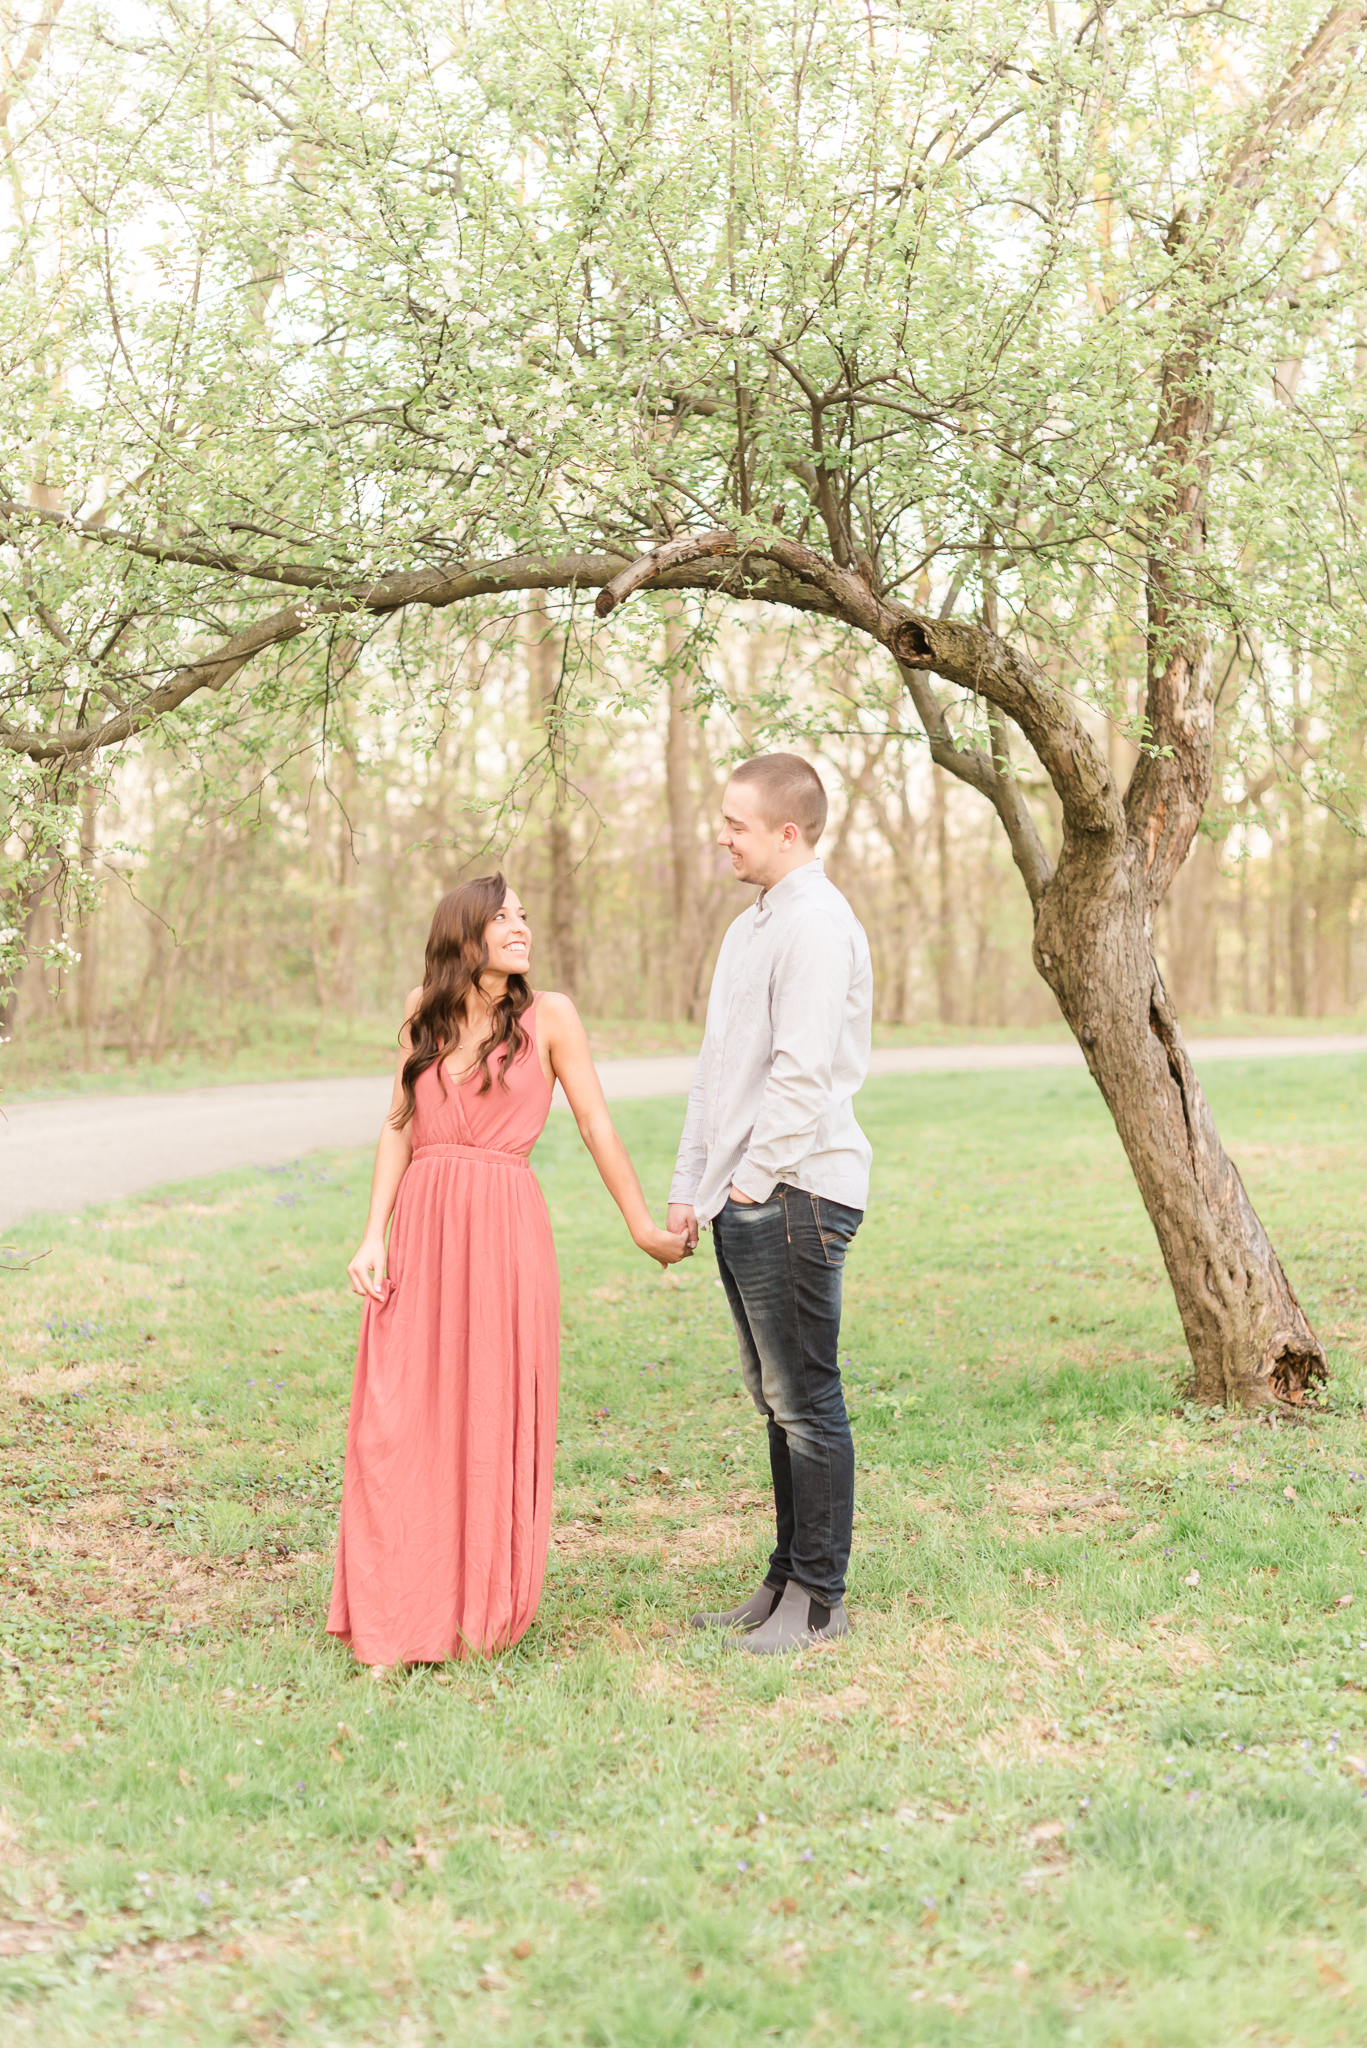 Holliday Park Engagement Session Indianapolis Wedding Photographer-29.jpg